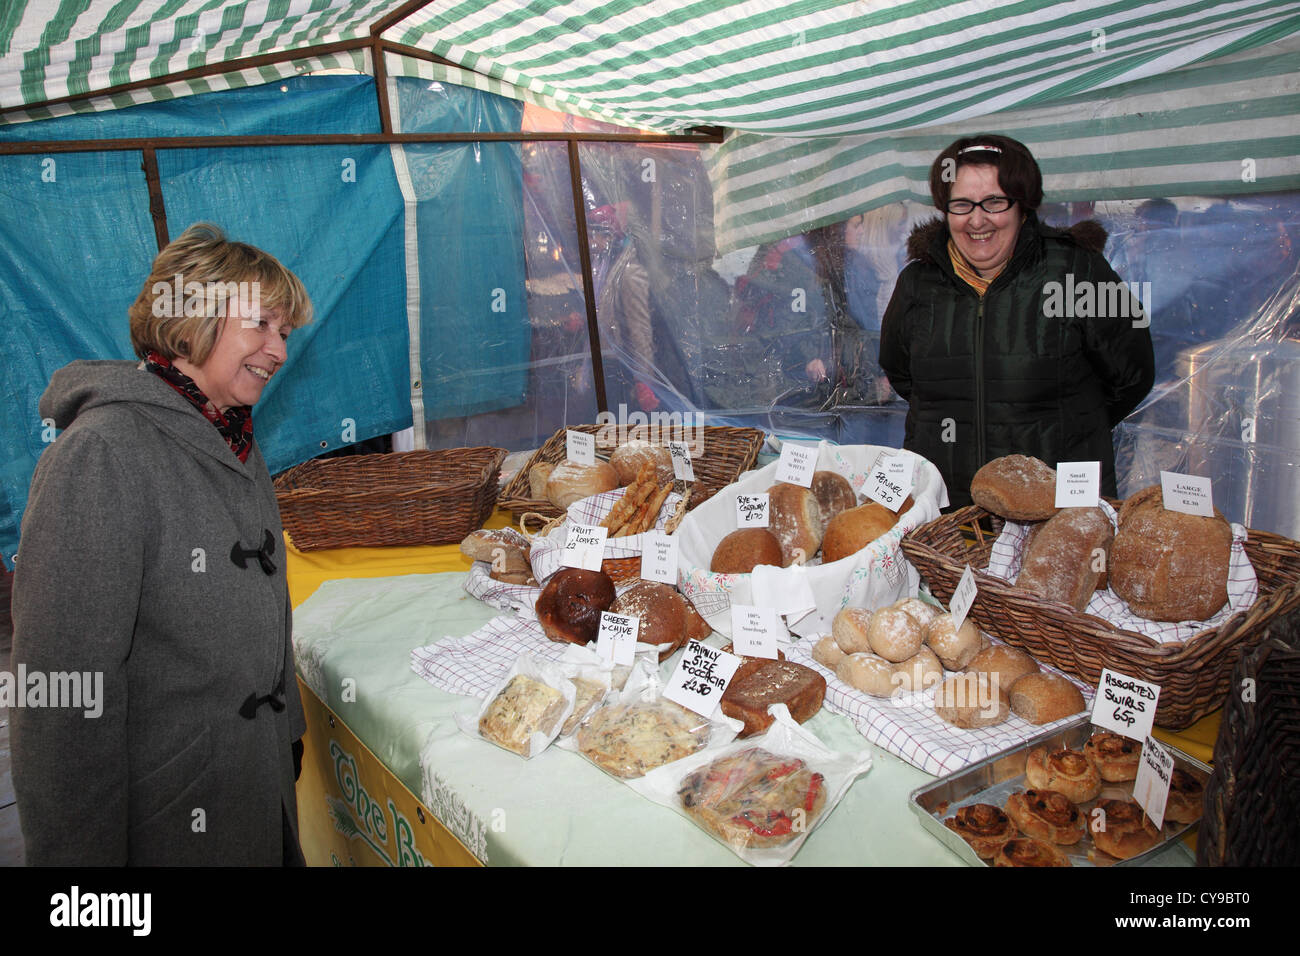 smiling-woman-stall-holder-and-female-cu